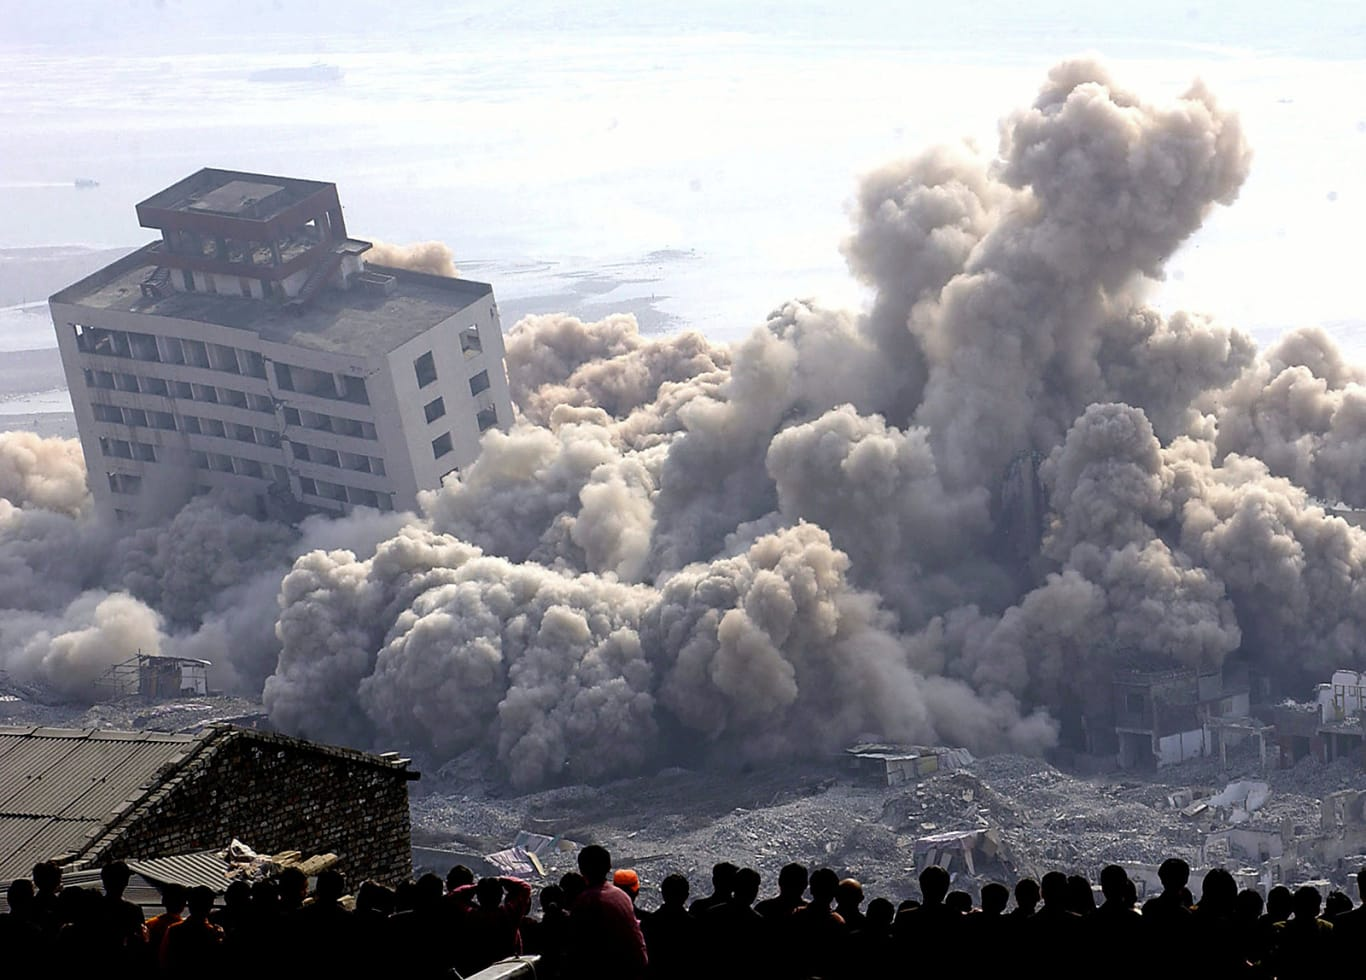 Residents of Fengjie, in southwest China's Chongqing, watch the demolition of buildings in their town on November 4, 2002, to make room for the Three Gorges Dam's resevoir.